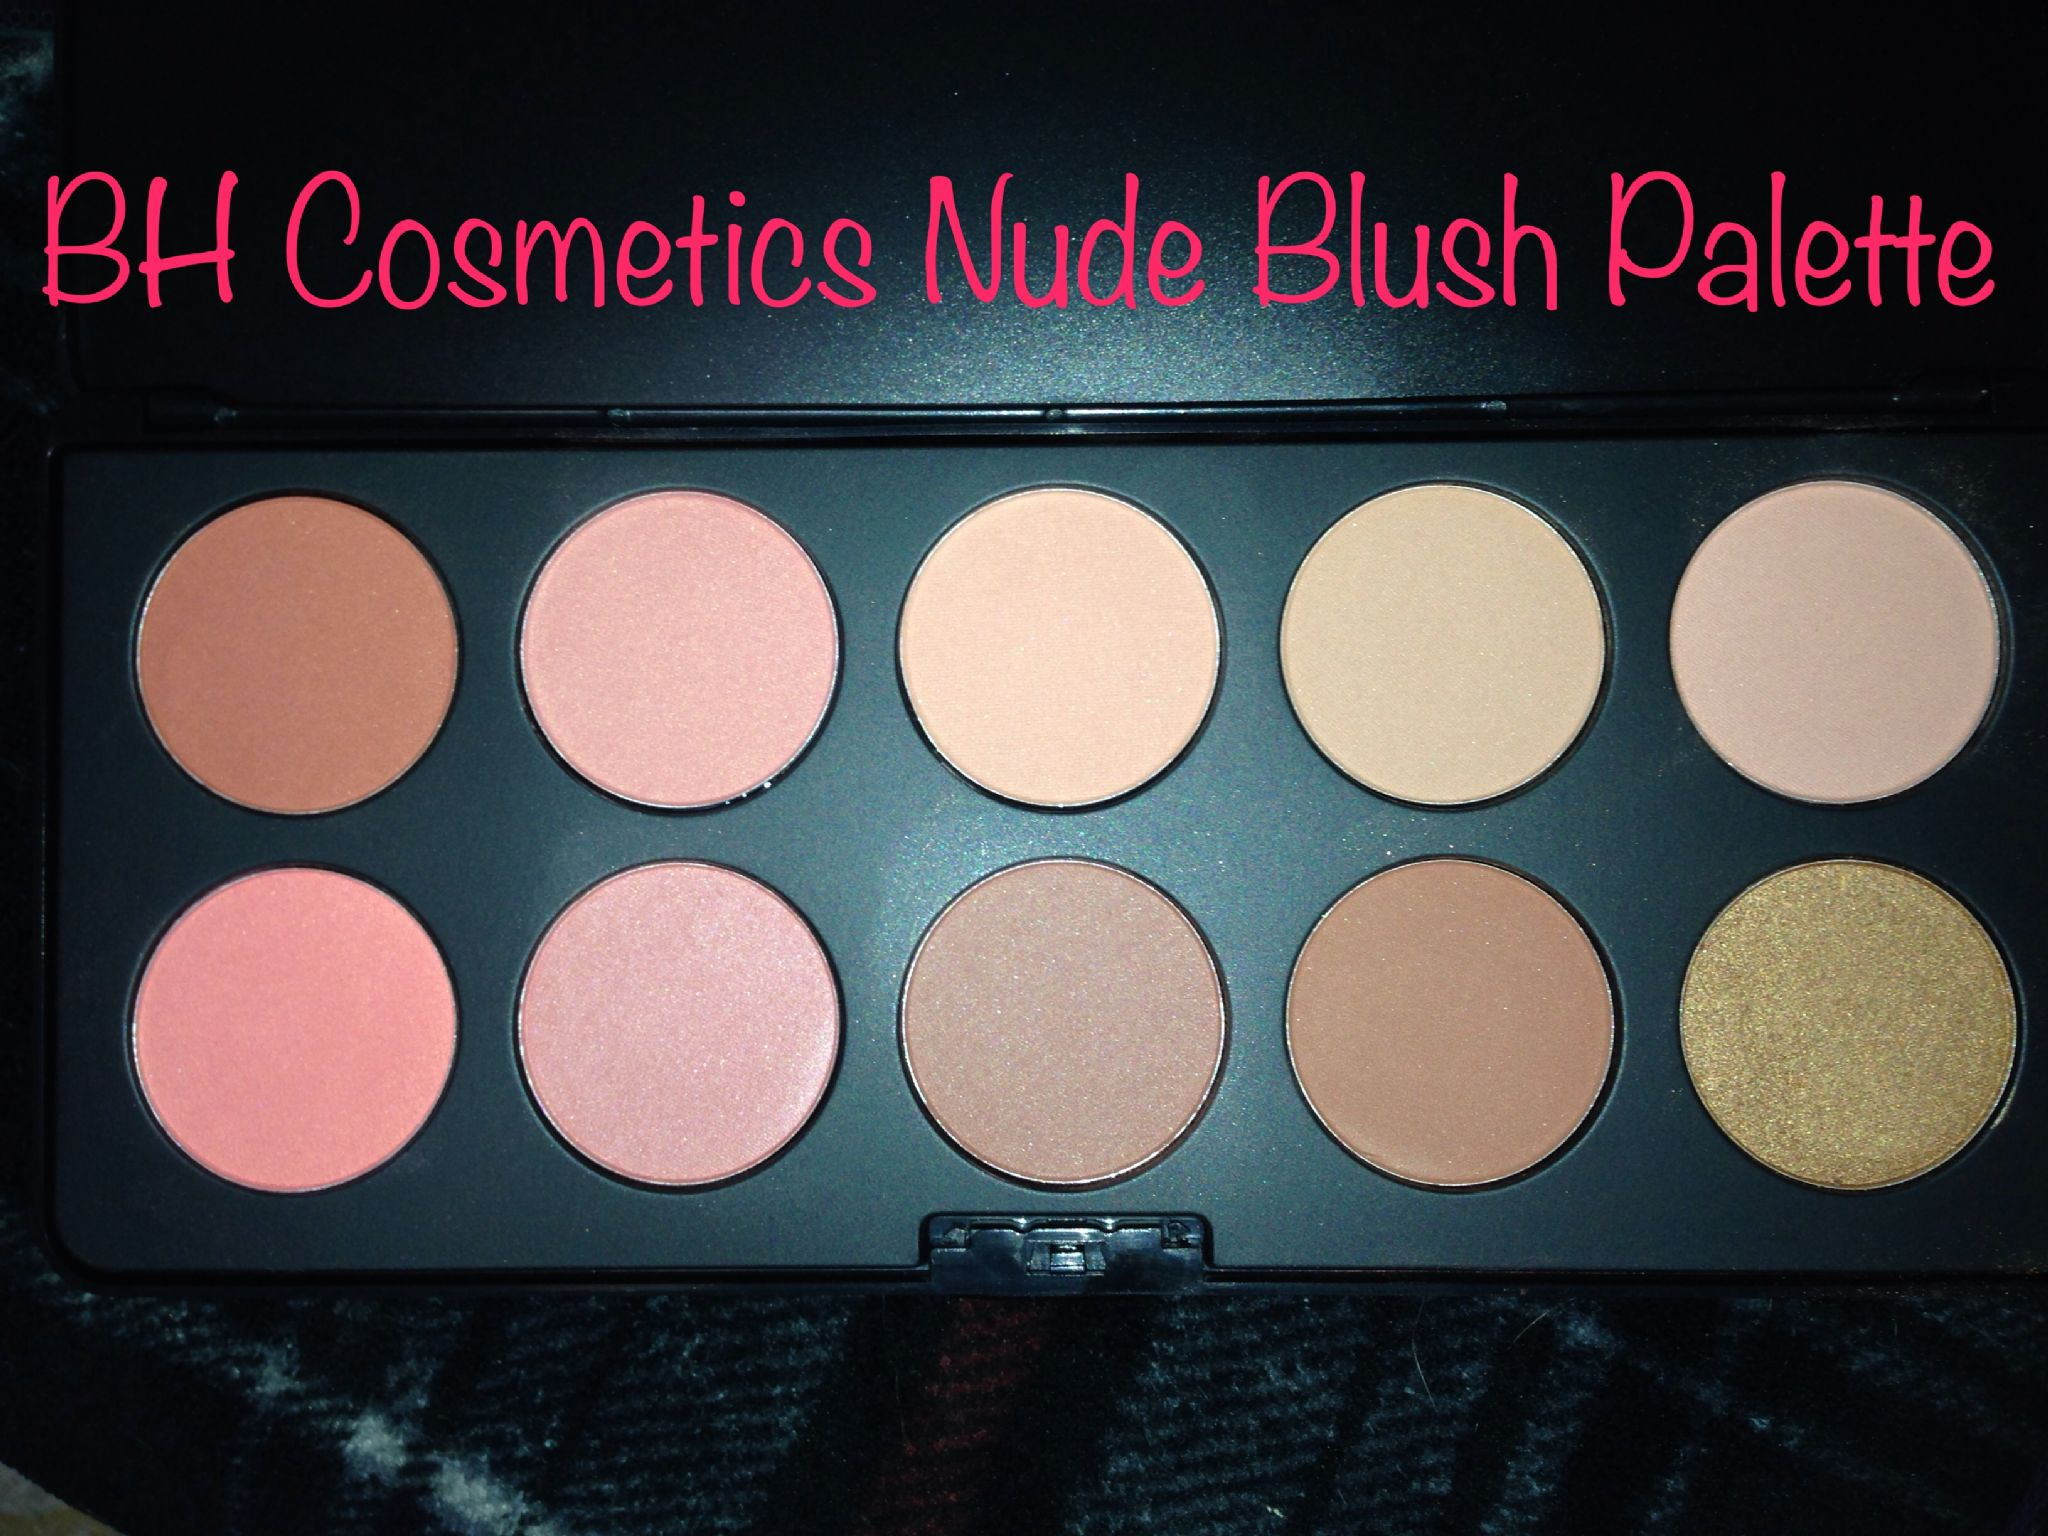 BH Cosmetics 10 Color Nude Blush Palette - YouTube